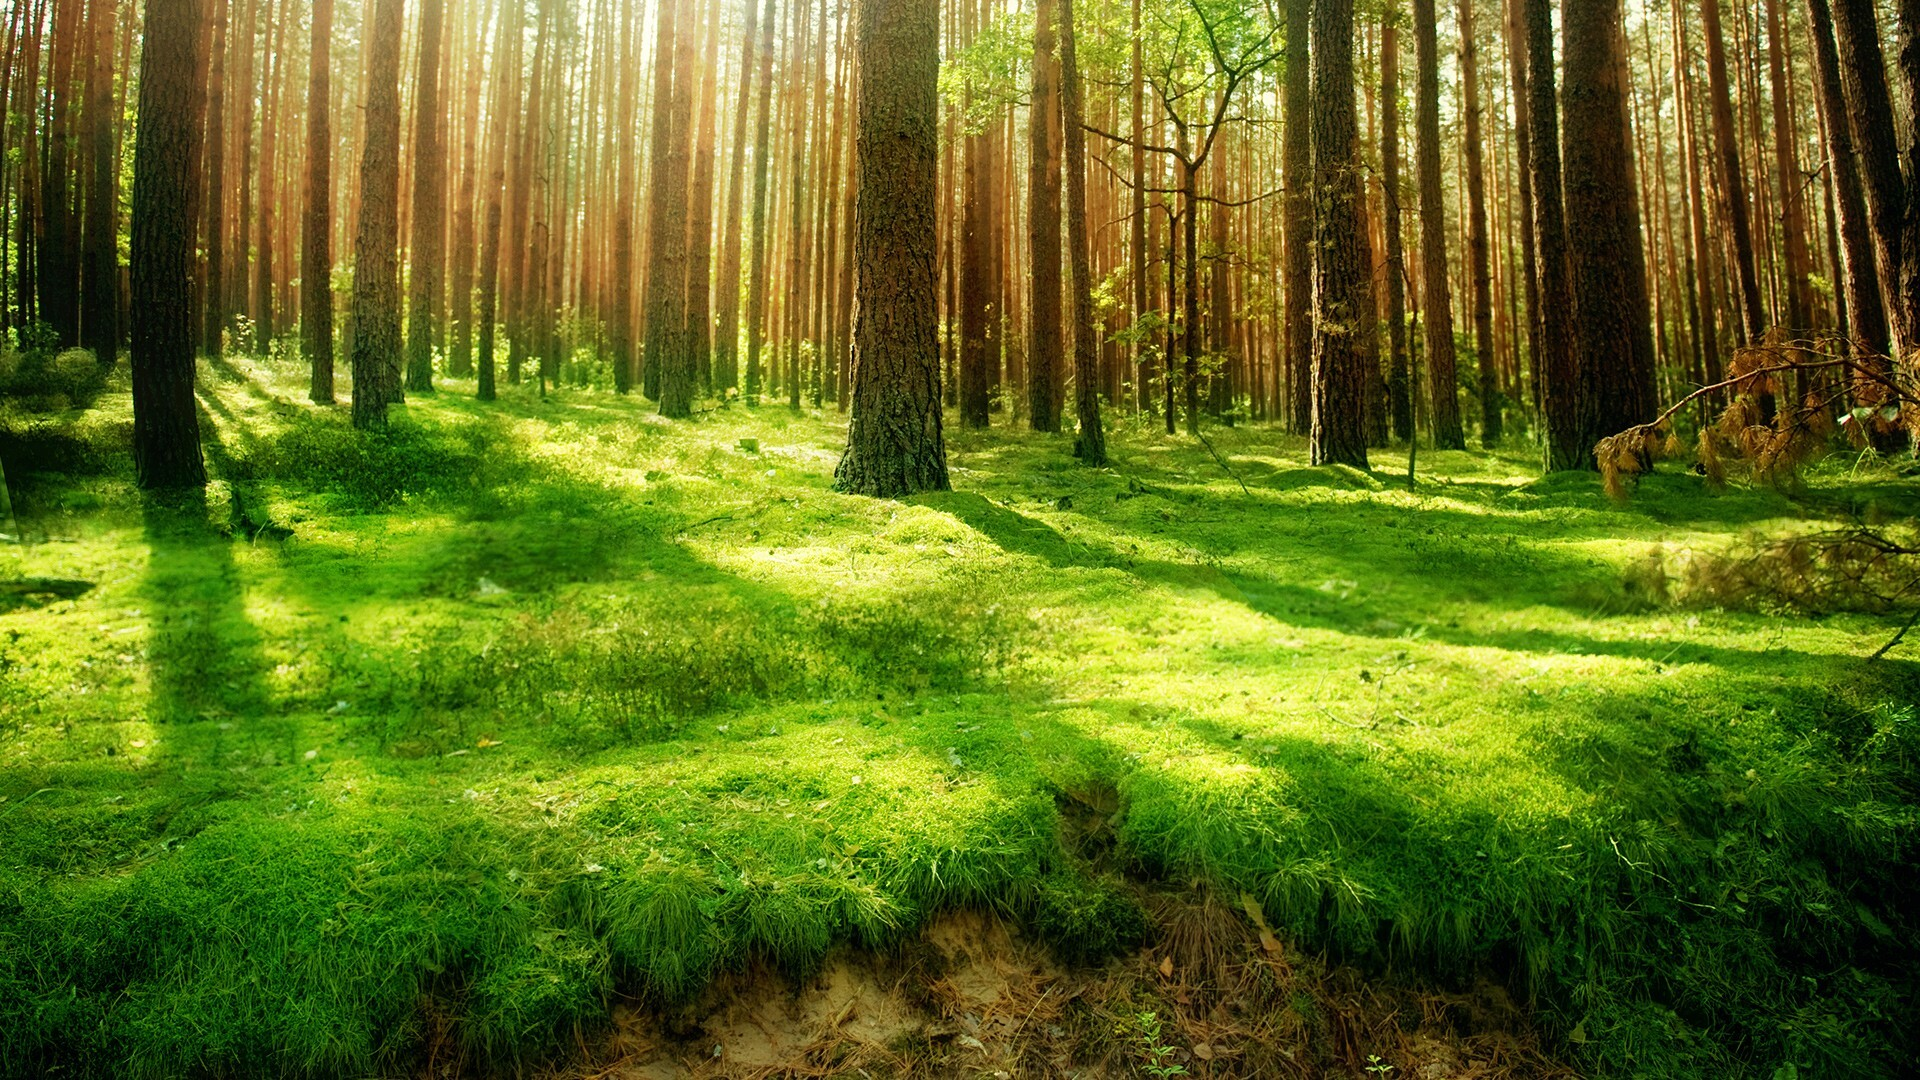 Tm 77 Forest Wallpaper Pictures Of Forest 4k Ultra - Forest Background - HD Wallpaper